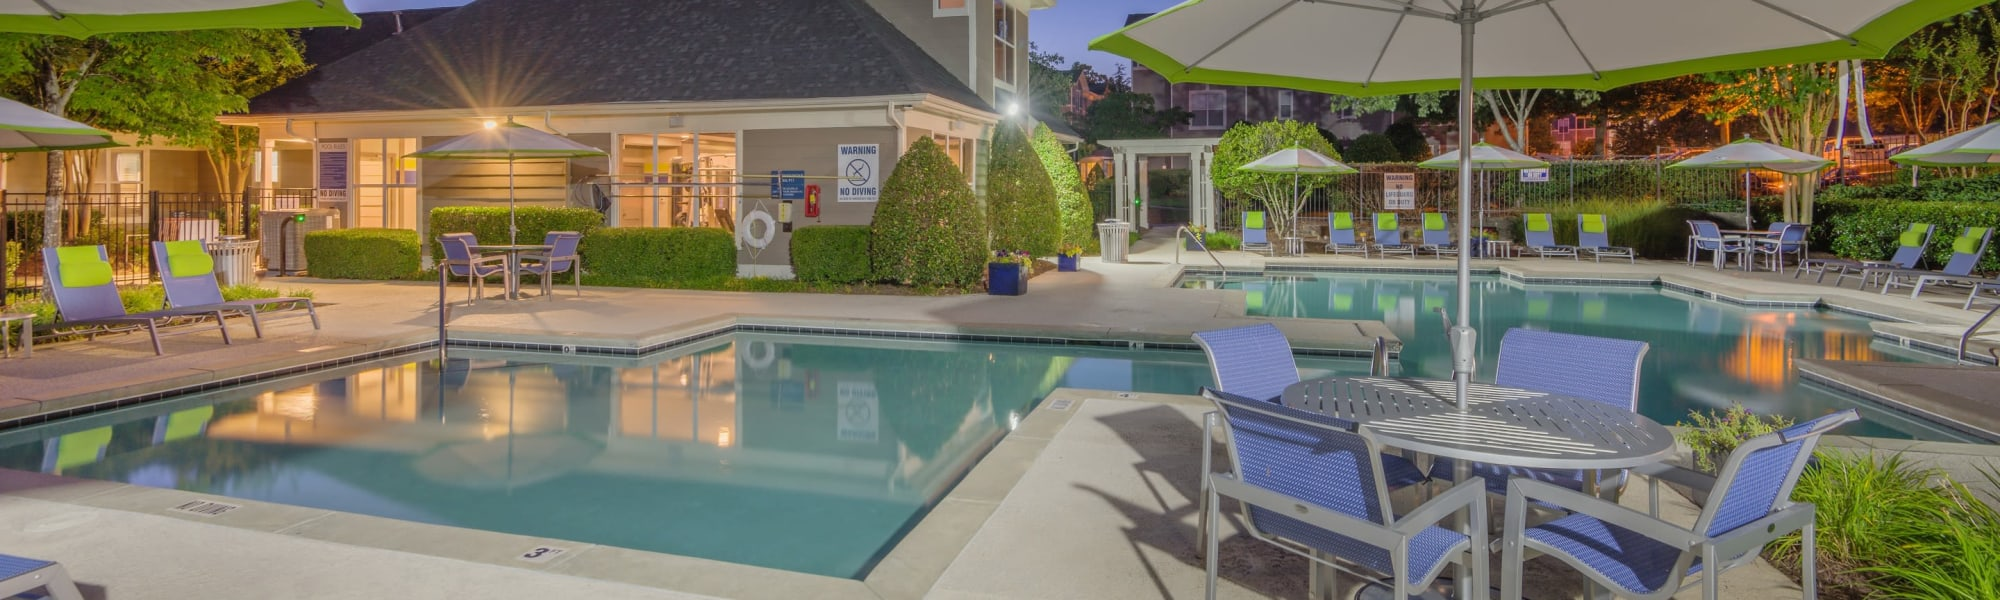 Amenities at The Mark in Raleigh, North Carolina